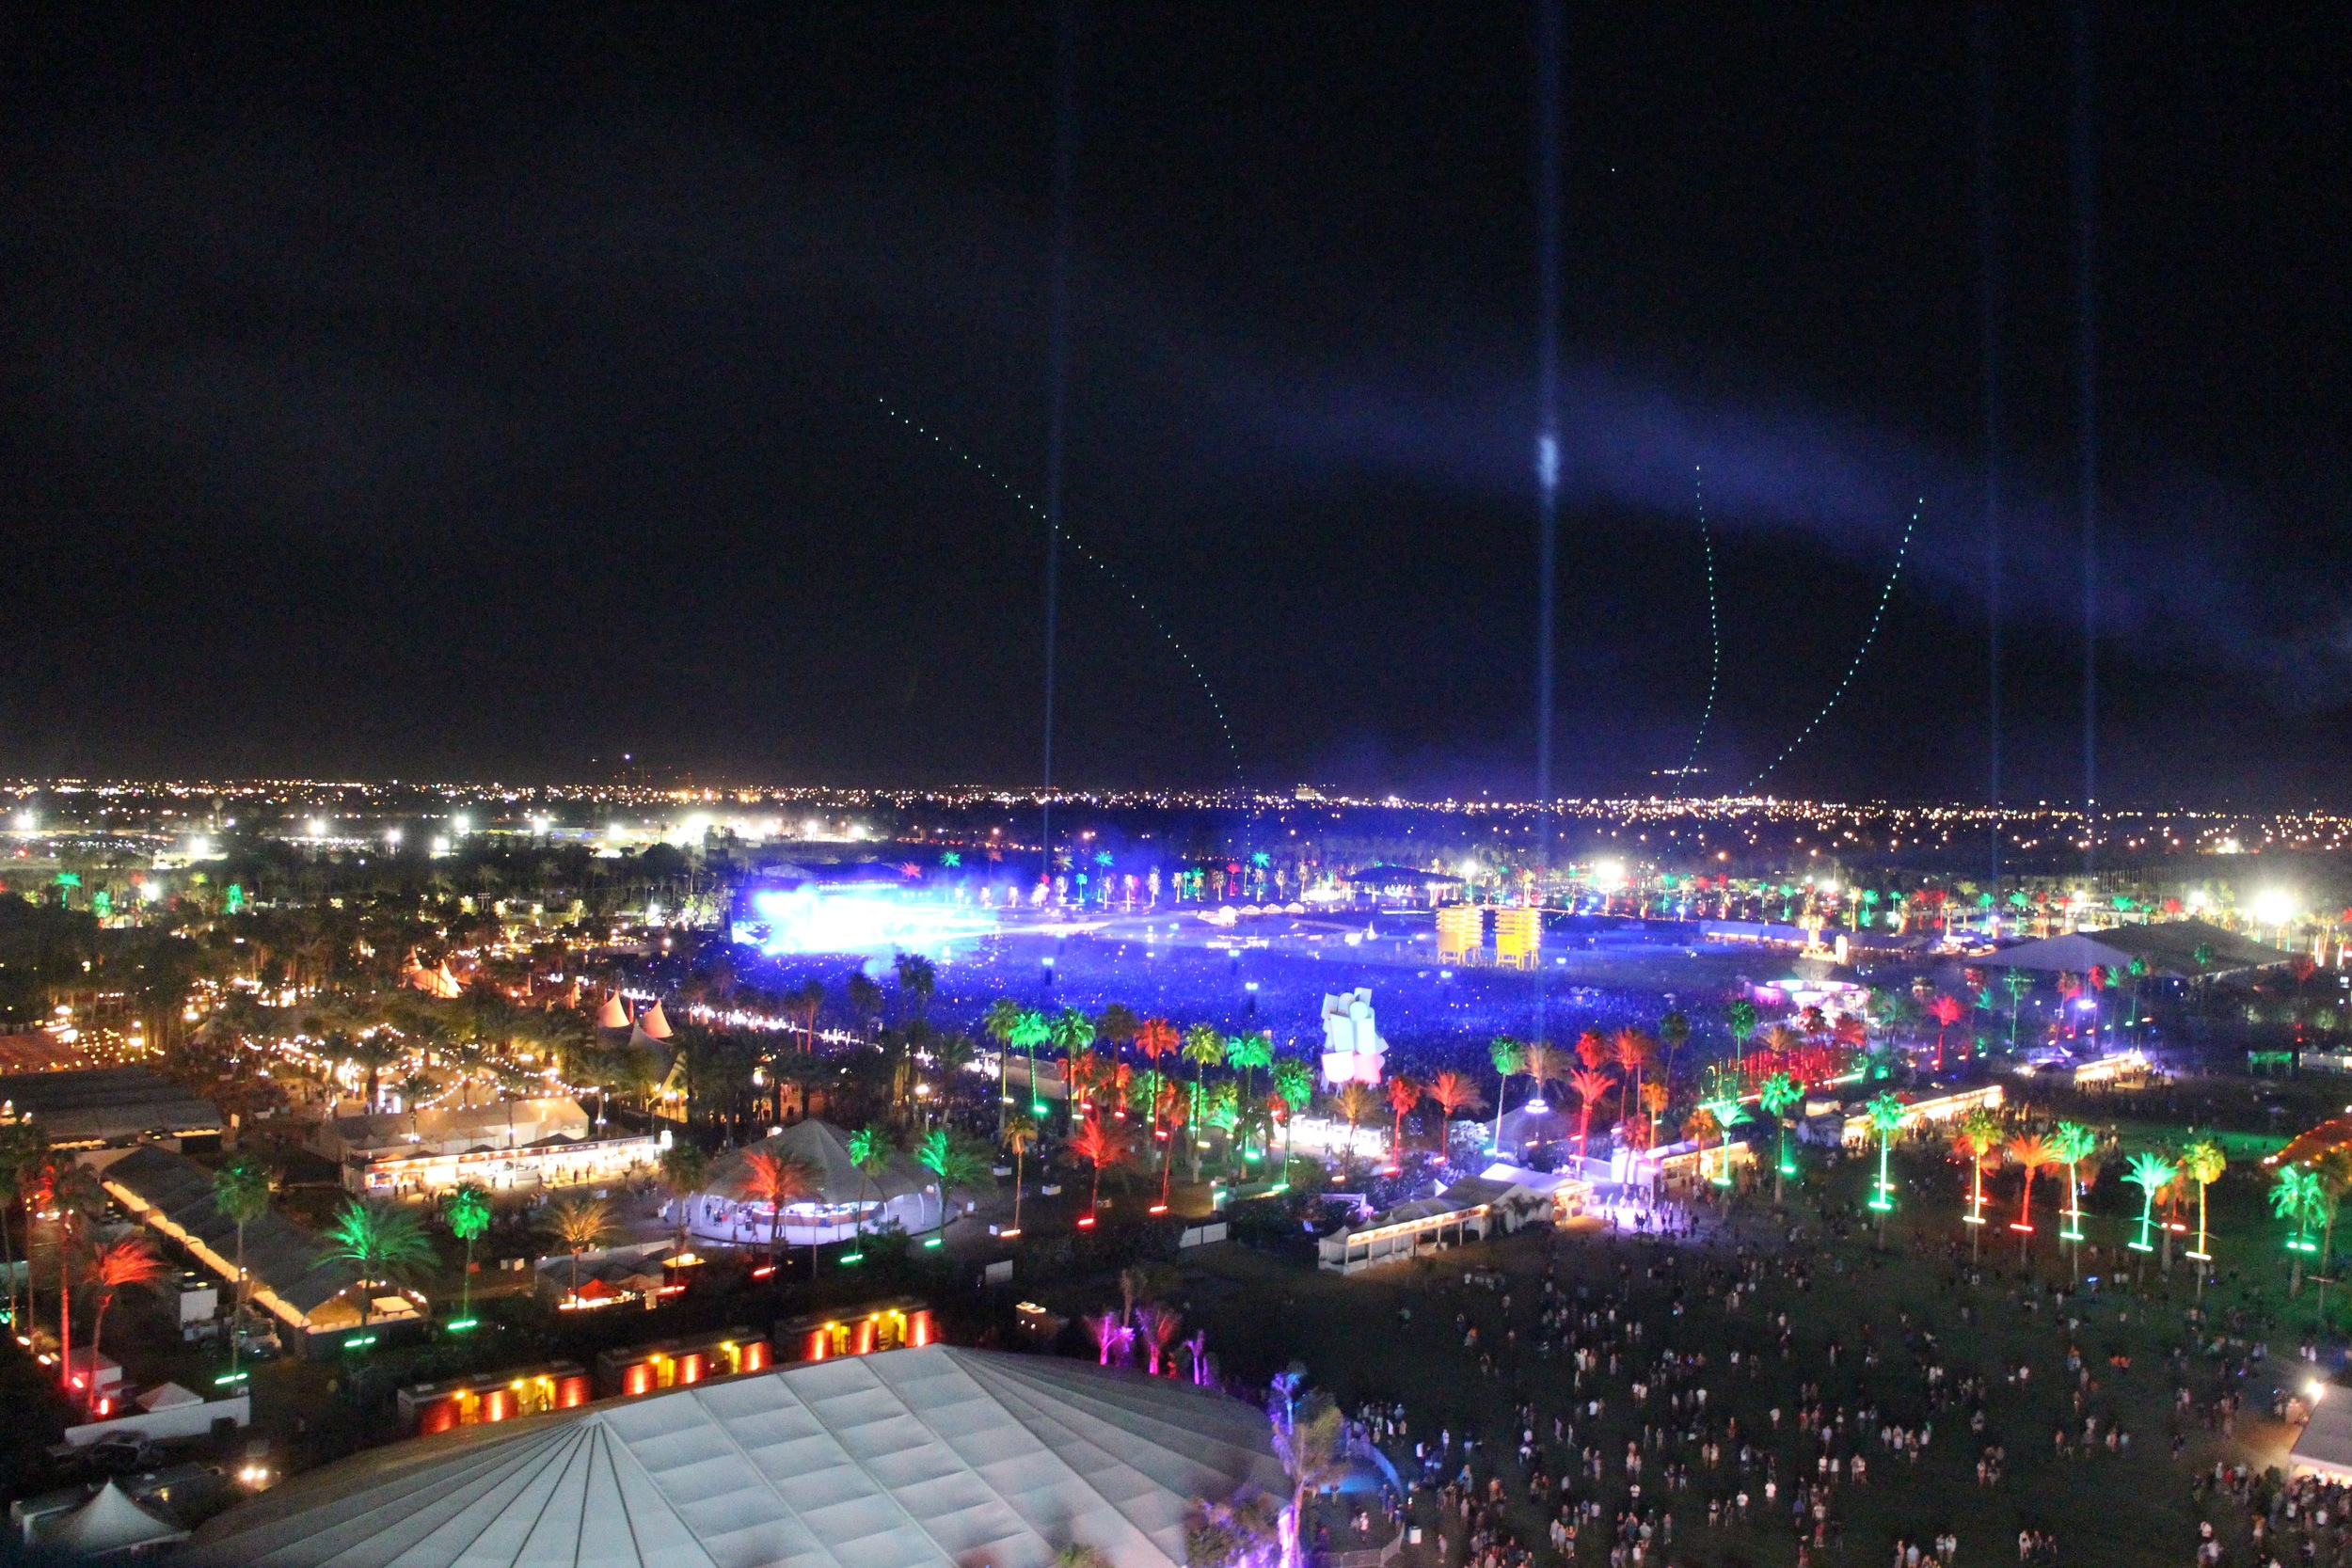 View of festival grounds from the ferris wheel - the purplish section is  filled  with people lined up for Calvin Harris (and Rihanna, which I completely missed because I was hanging out on said ferris wheel... *cries*) !